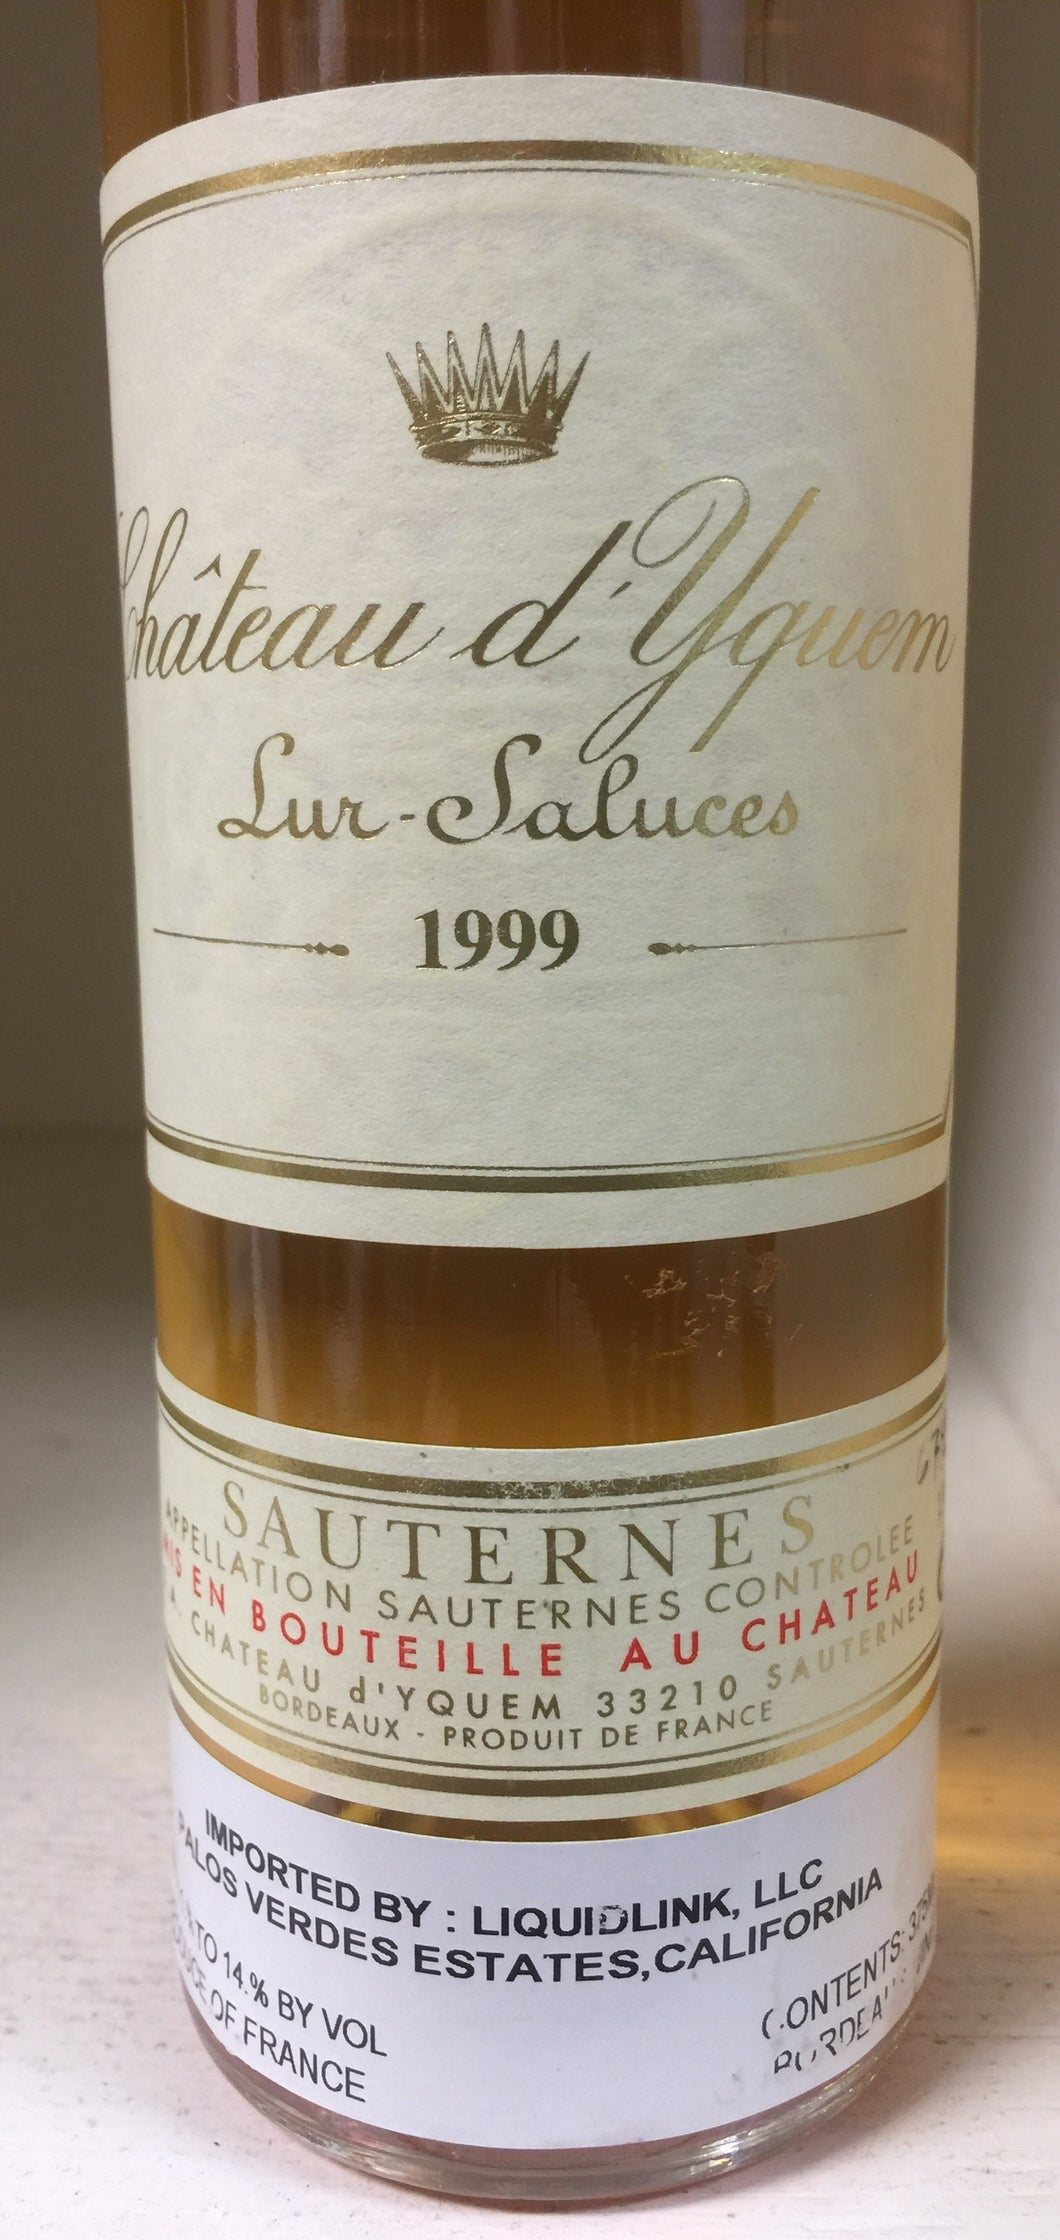 1999 Chateau d'Yquem - HALF BOTTLE